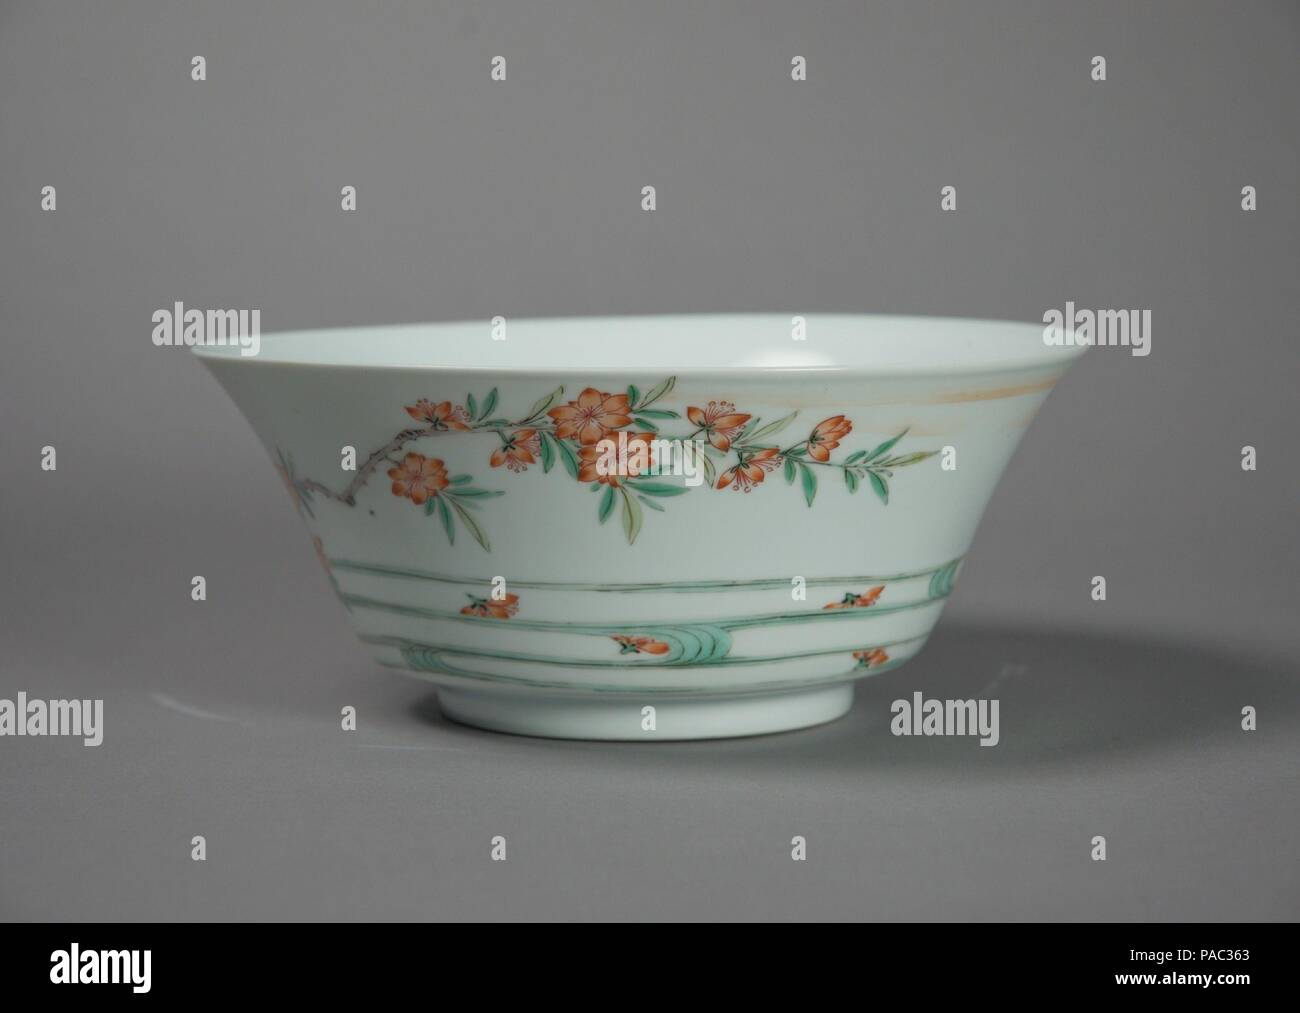 Bowl with Flowers and Waves. Culture: China. Dimensions: Diam. 8 1/4 in. (21 cm). Date: late 17th-early 18th century.  The six Chinese characters on the bottom of this bowl read 'made during the reign of the Chenghua Emperor.' Although the Chenghua Emperor ruled from 1467 to 1487, this particular bowl was made several centuries later. Chinese porcelains are sometimes inscribed with earlier dates; these can be read as both an act of respect toward past traditions and a statement of quality. Museum: Metropolitan Museum of Art, New York, USA. - Stock Image